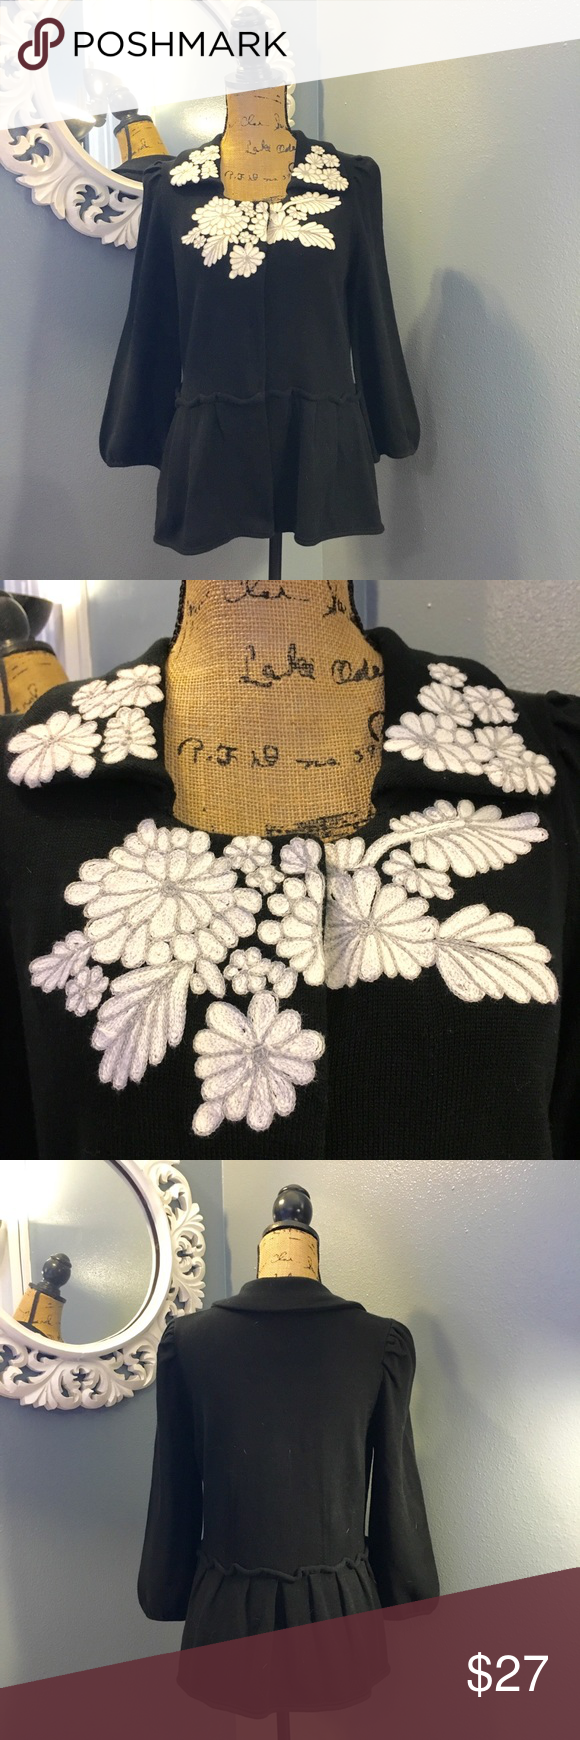 Black sweater with embroidered neckline Madison Black long sleeve heavier sweater. Large snap closure. Beautiful machine embroidery at neckline and on collar. Slightly gathered waistline. Gently worn. Madison Sweaters